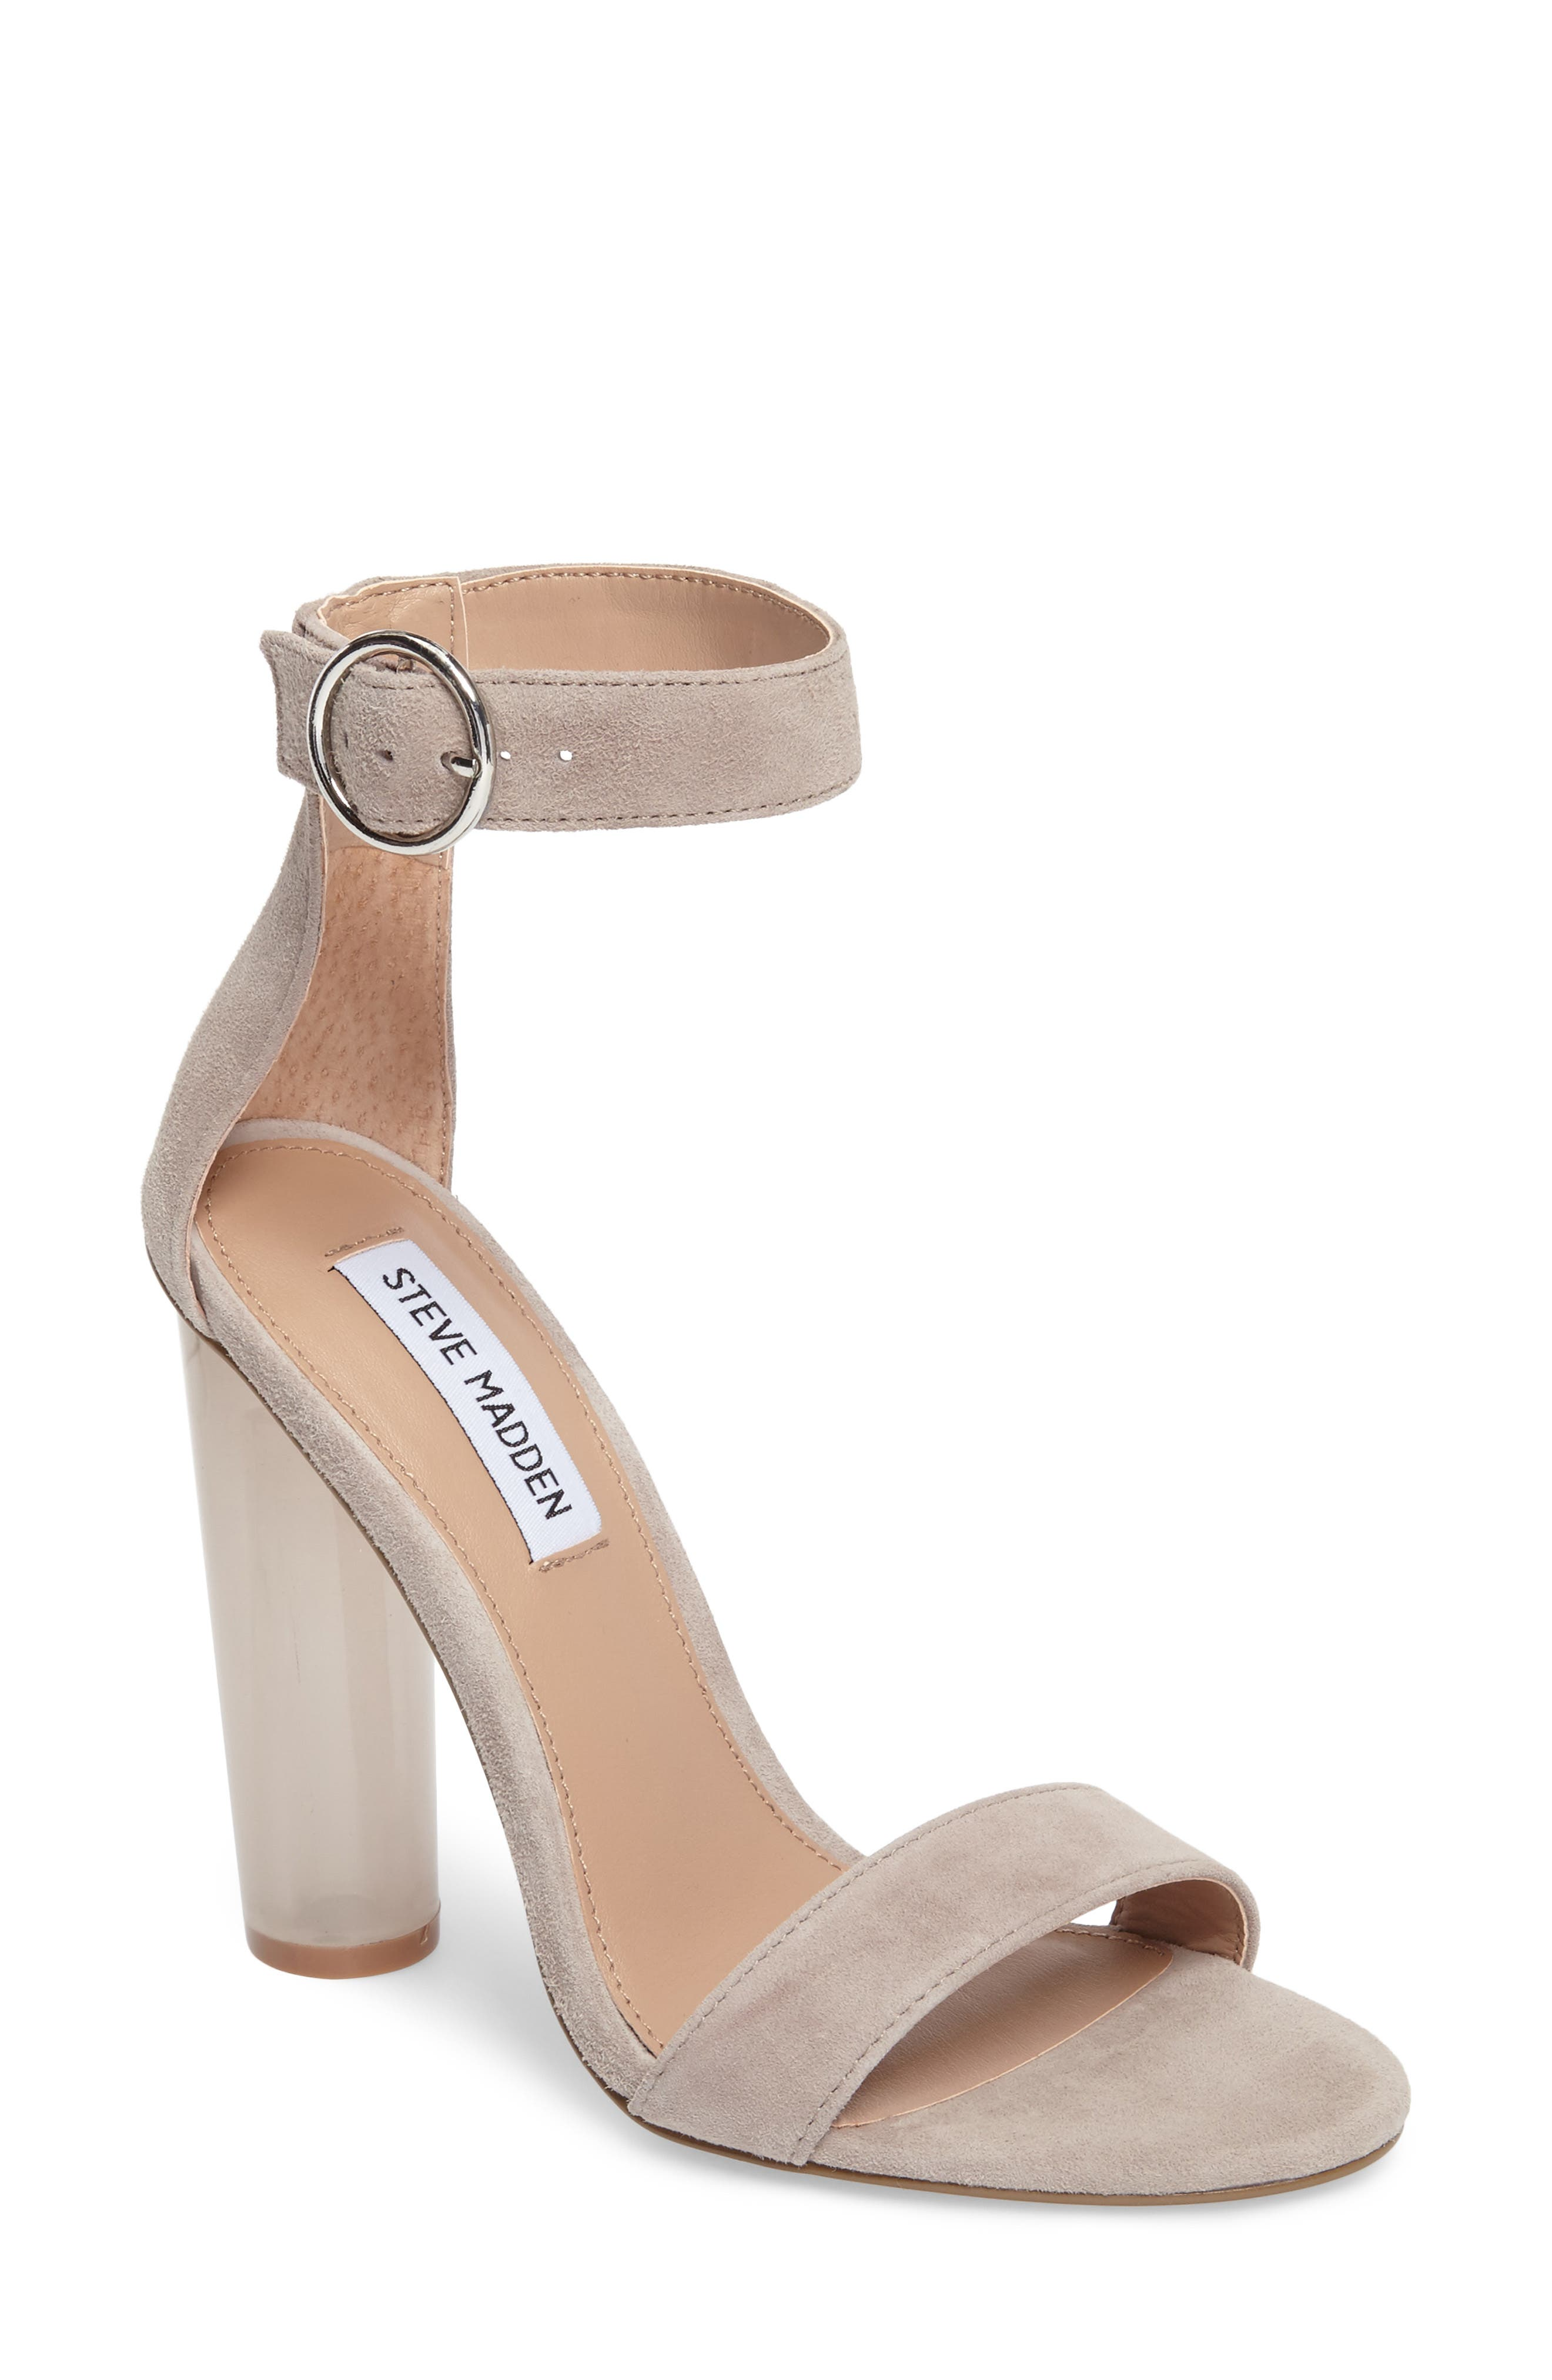 Alternate Image 1 Selected - Steve Madden Teaser Sandal (Women)